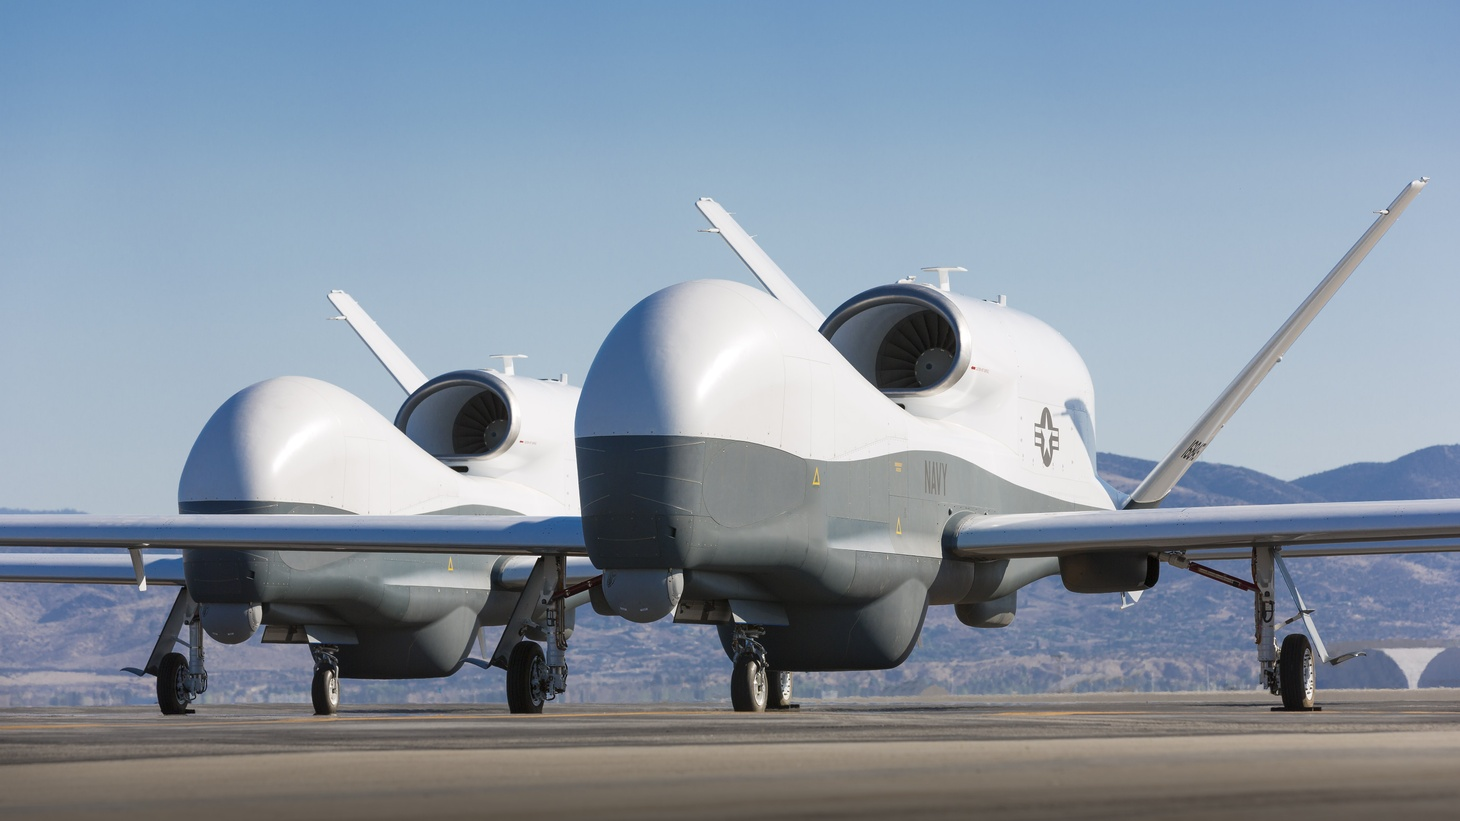 The Navy's newest unmanned Intelligence, Surveillance and Reconnaissance (ISR) aircraft platform, the MQ-4C Triton Unmanned Aircraft System (UAS), completed its first flight from Palmdale